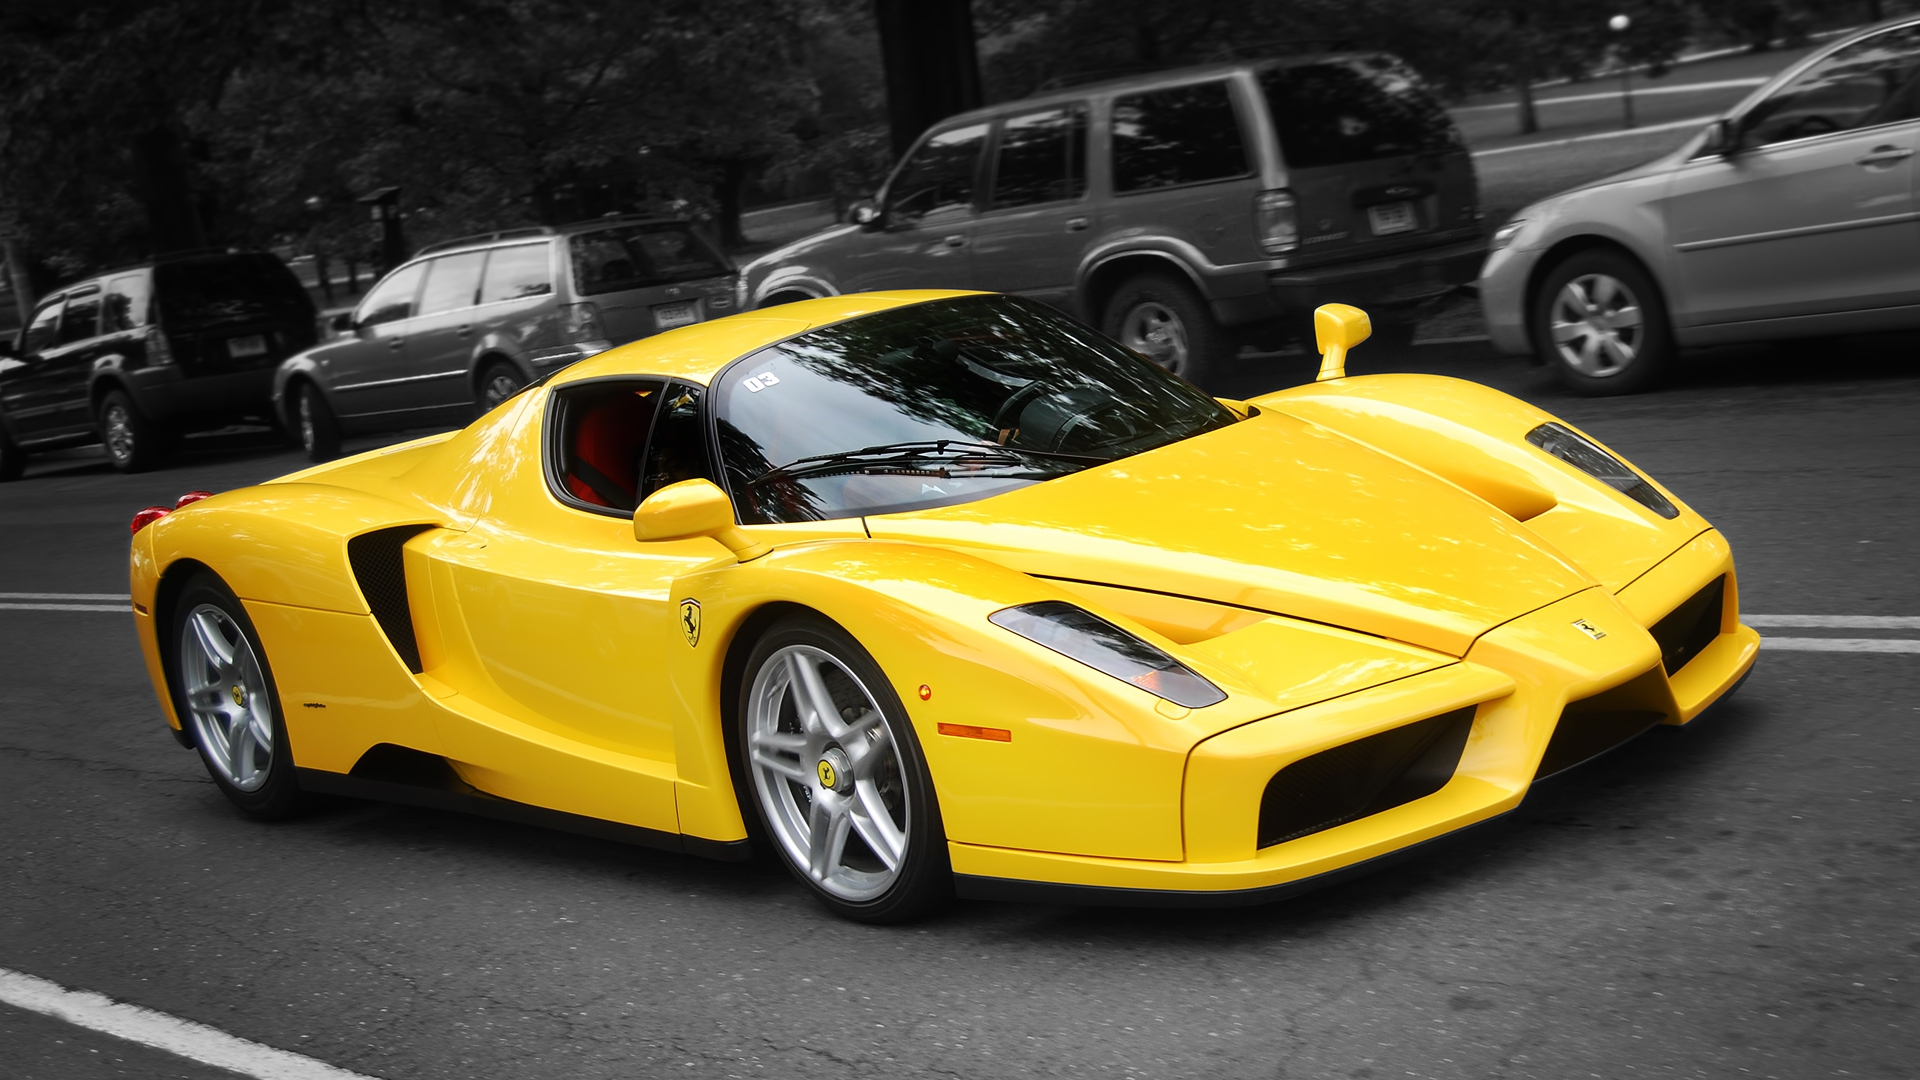 Ferrari Enzo Wallpaper HD Cars WallPaper HD 1920x1080